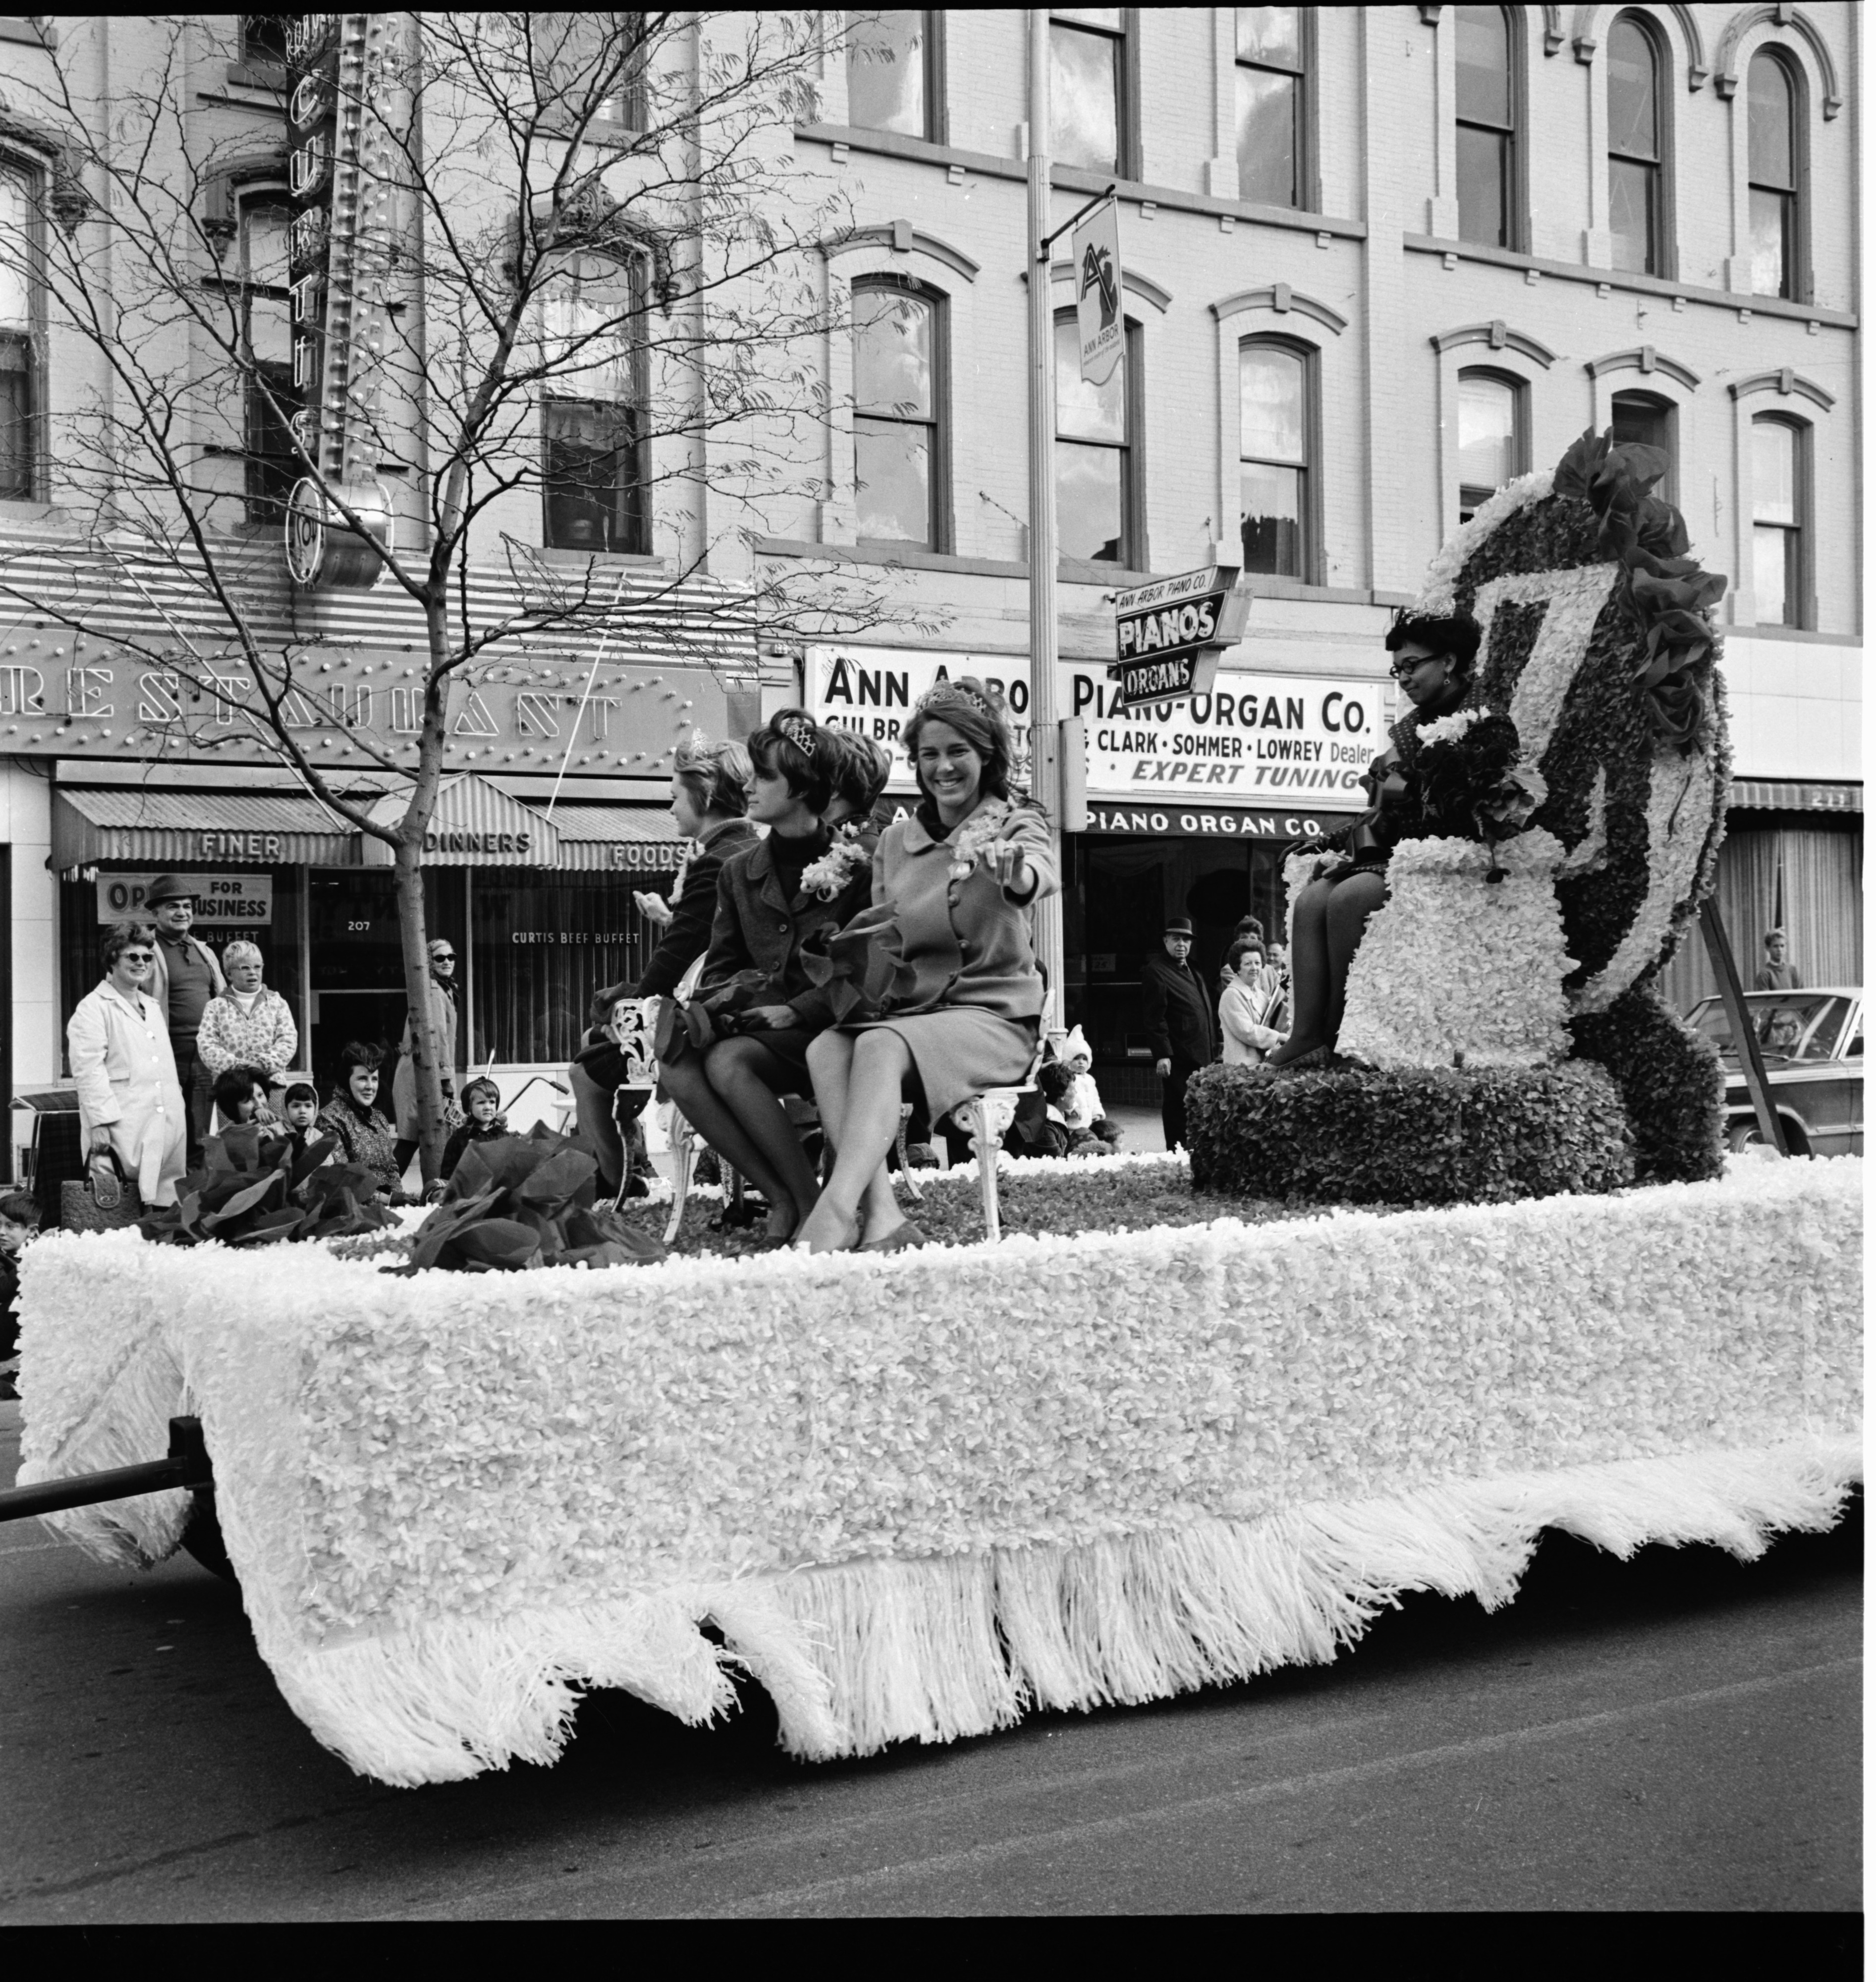 Float in the University of Michigan Homecoming parade, October 1967 image